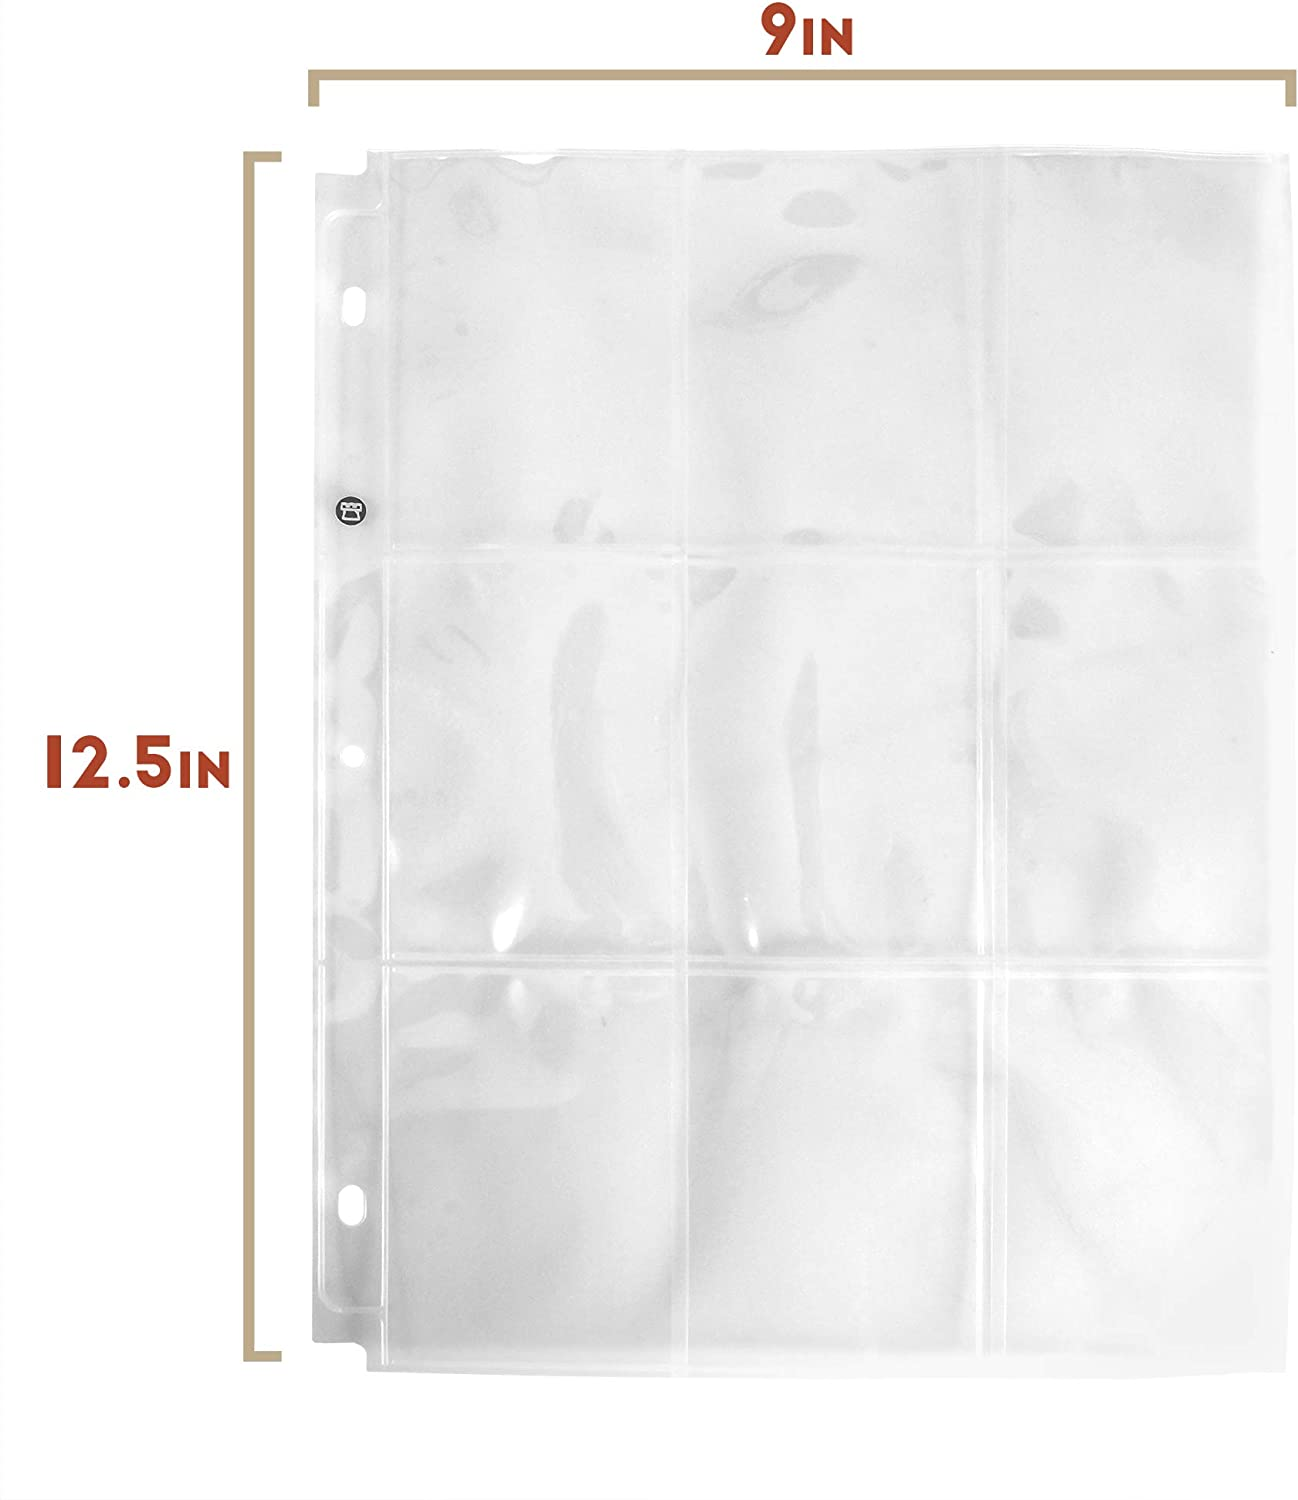 Protective Sleeves for Standard Size Cards and Collectible Card Games  Acid-Free Transparent Plastic Sheets for 3-Ring Trading Card Binders TCGs 9-Pocket Trading Card Pages Sports Side-Load